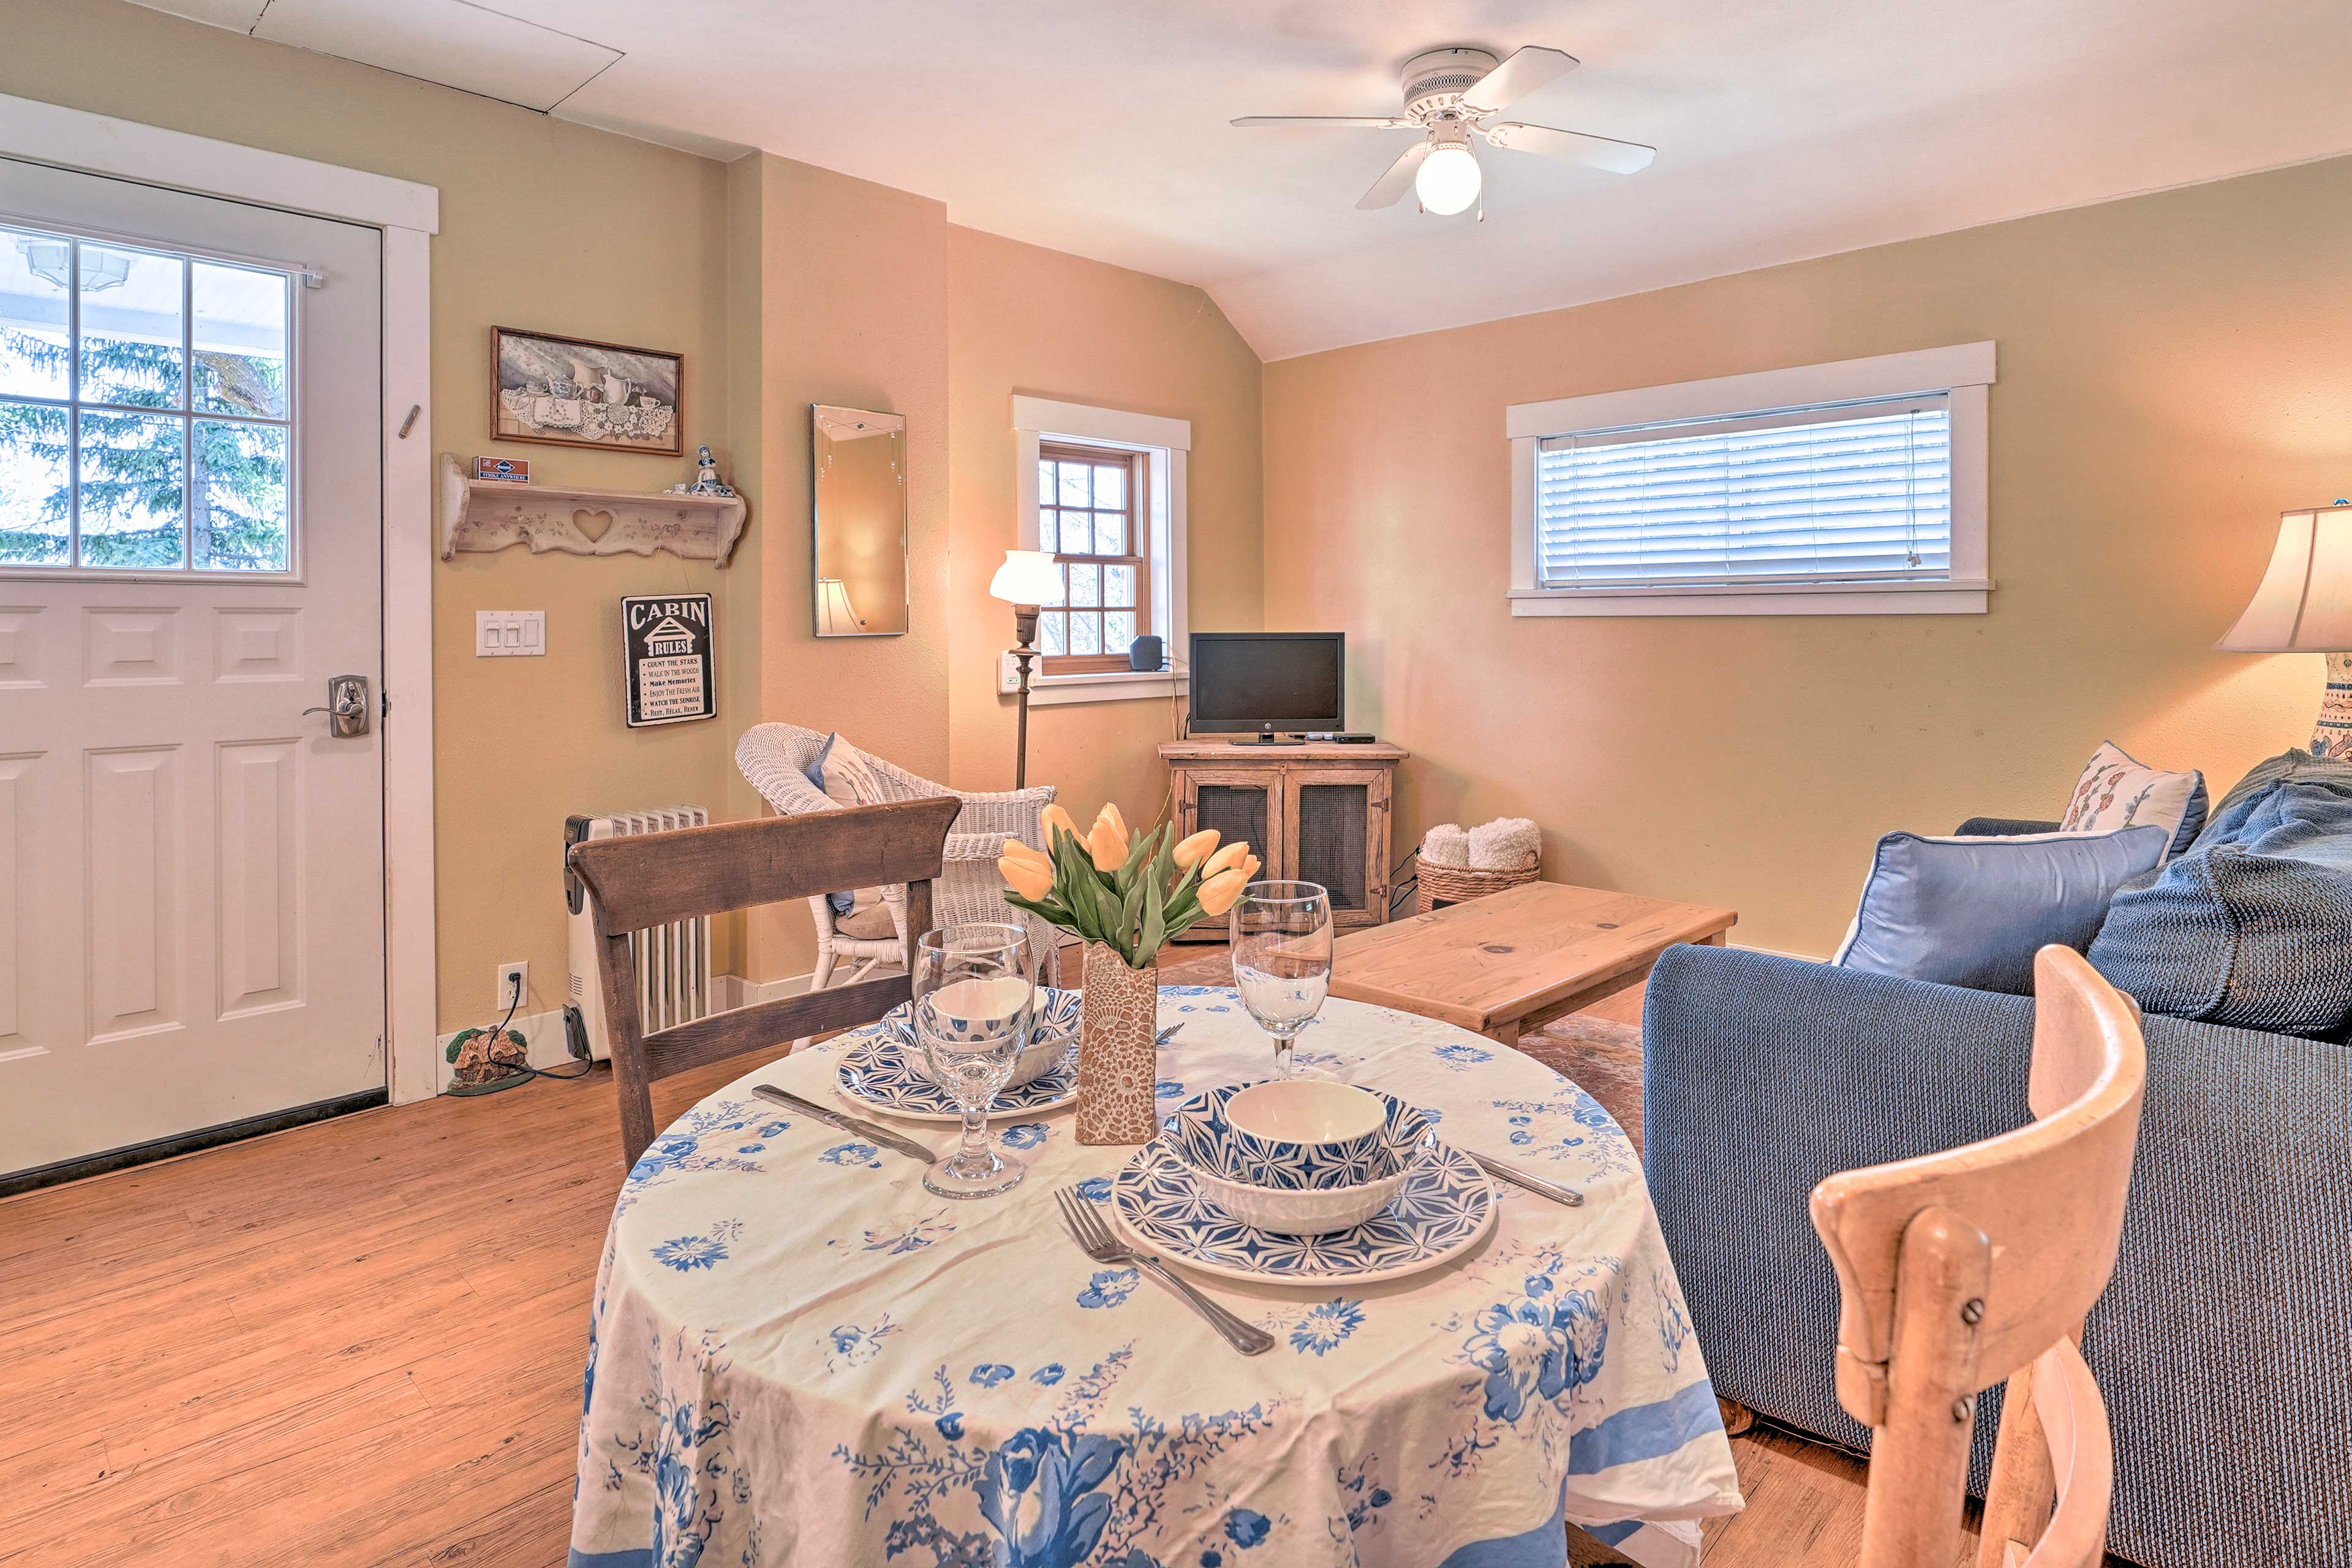 Blue decor throughout make the cottage extra homey and inviting.